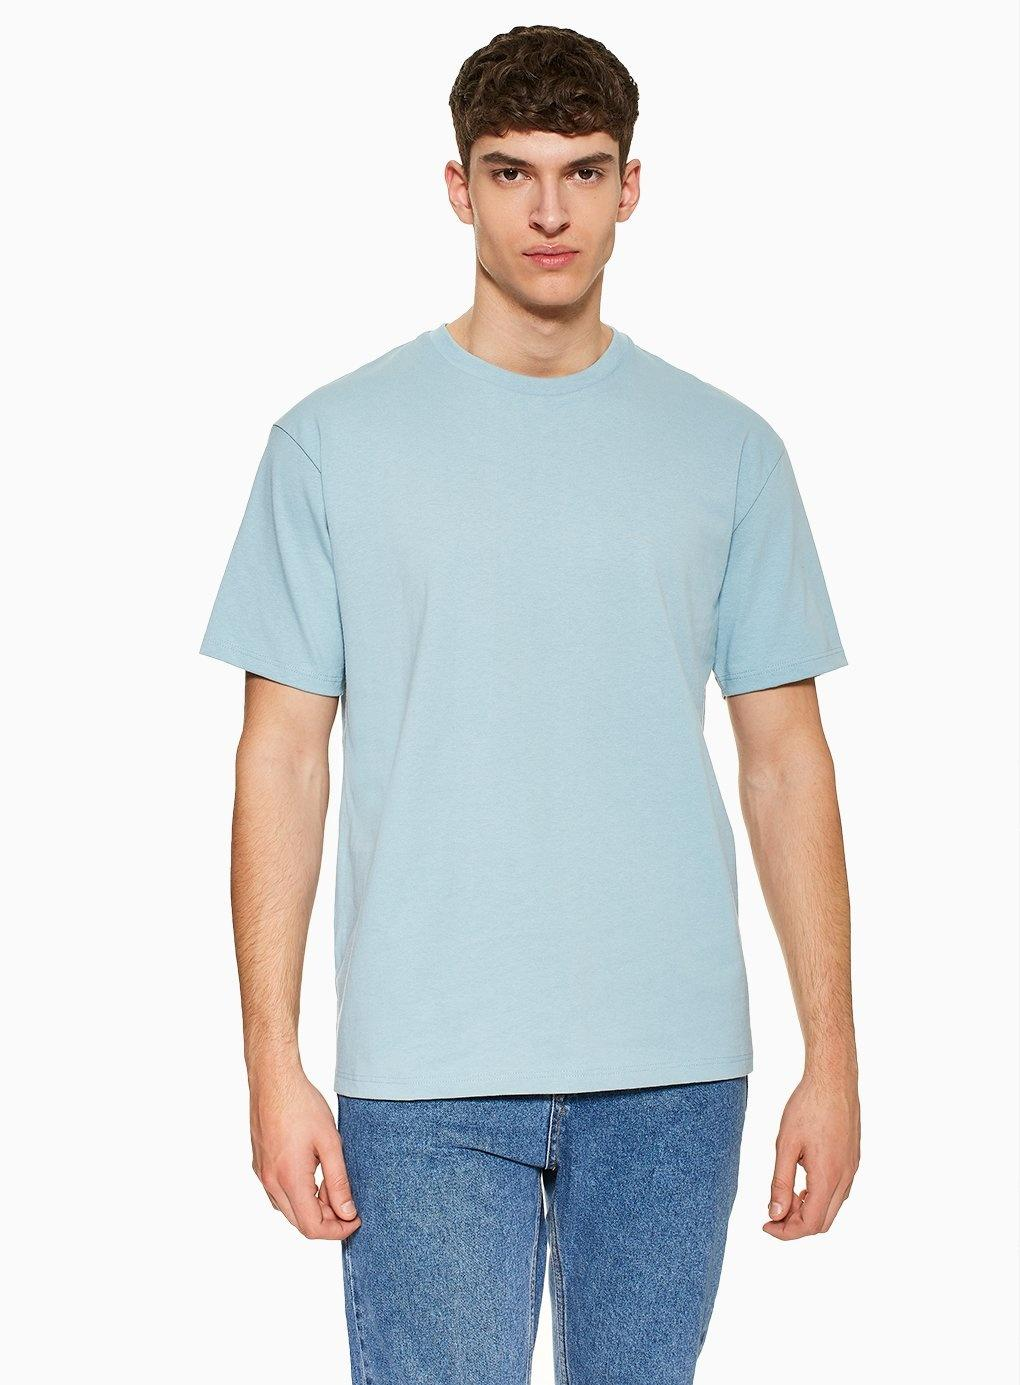 a14fa0ce Topman Duck EggOversized T-shirt in Blue for Men - Lyst